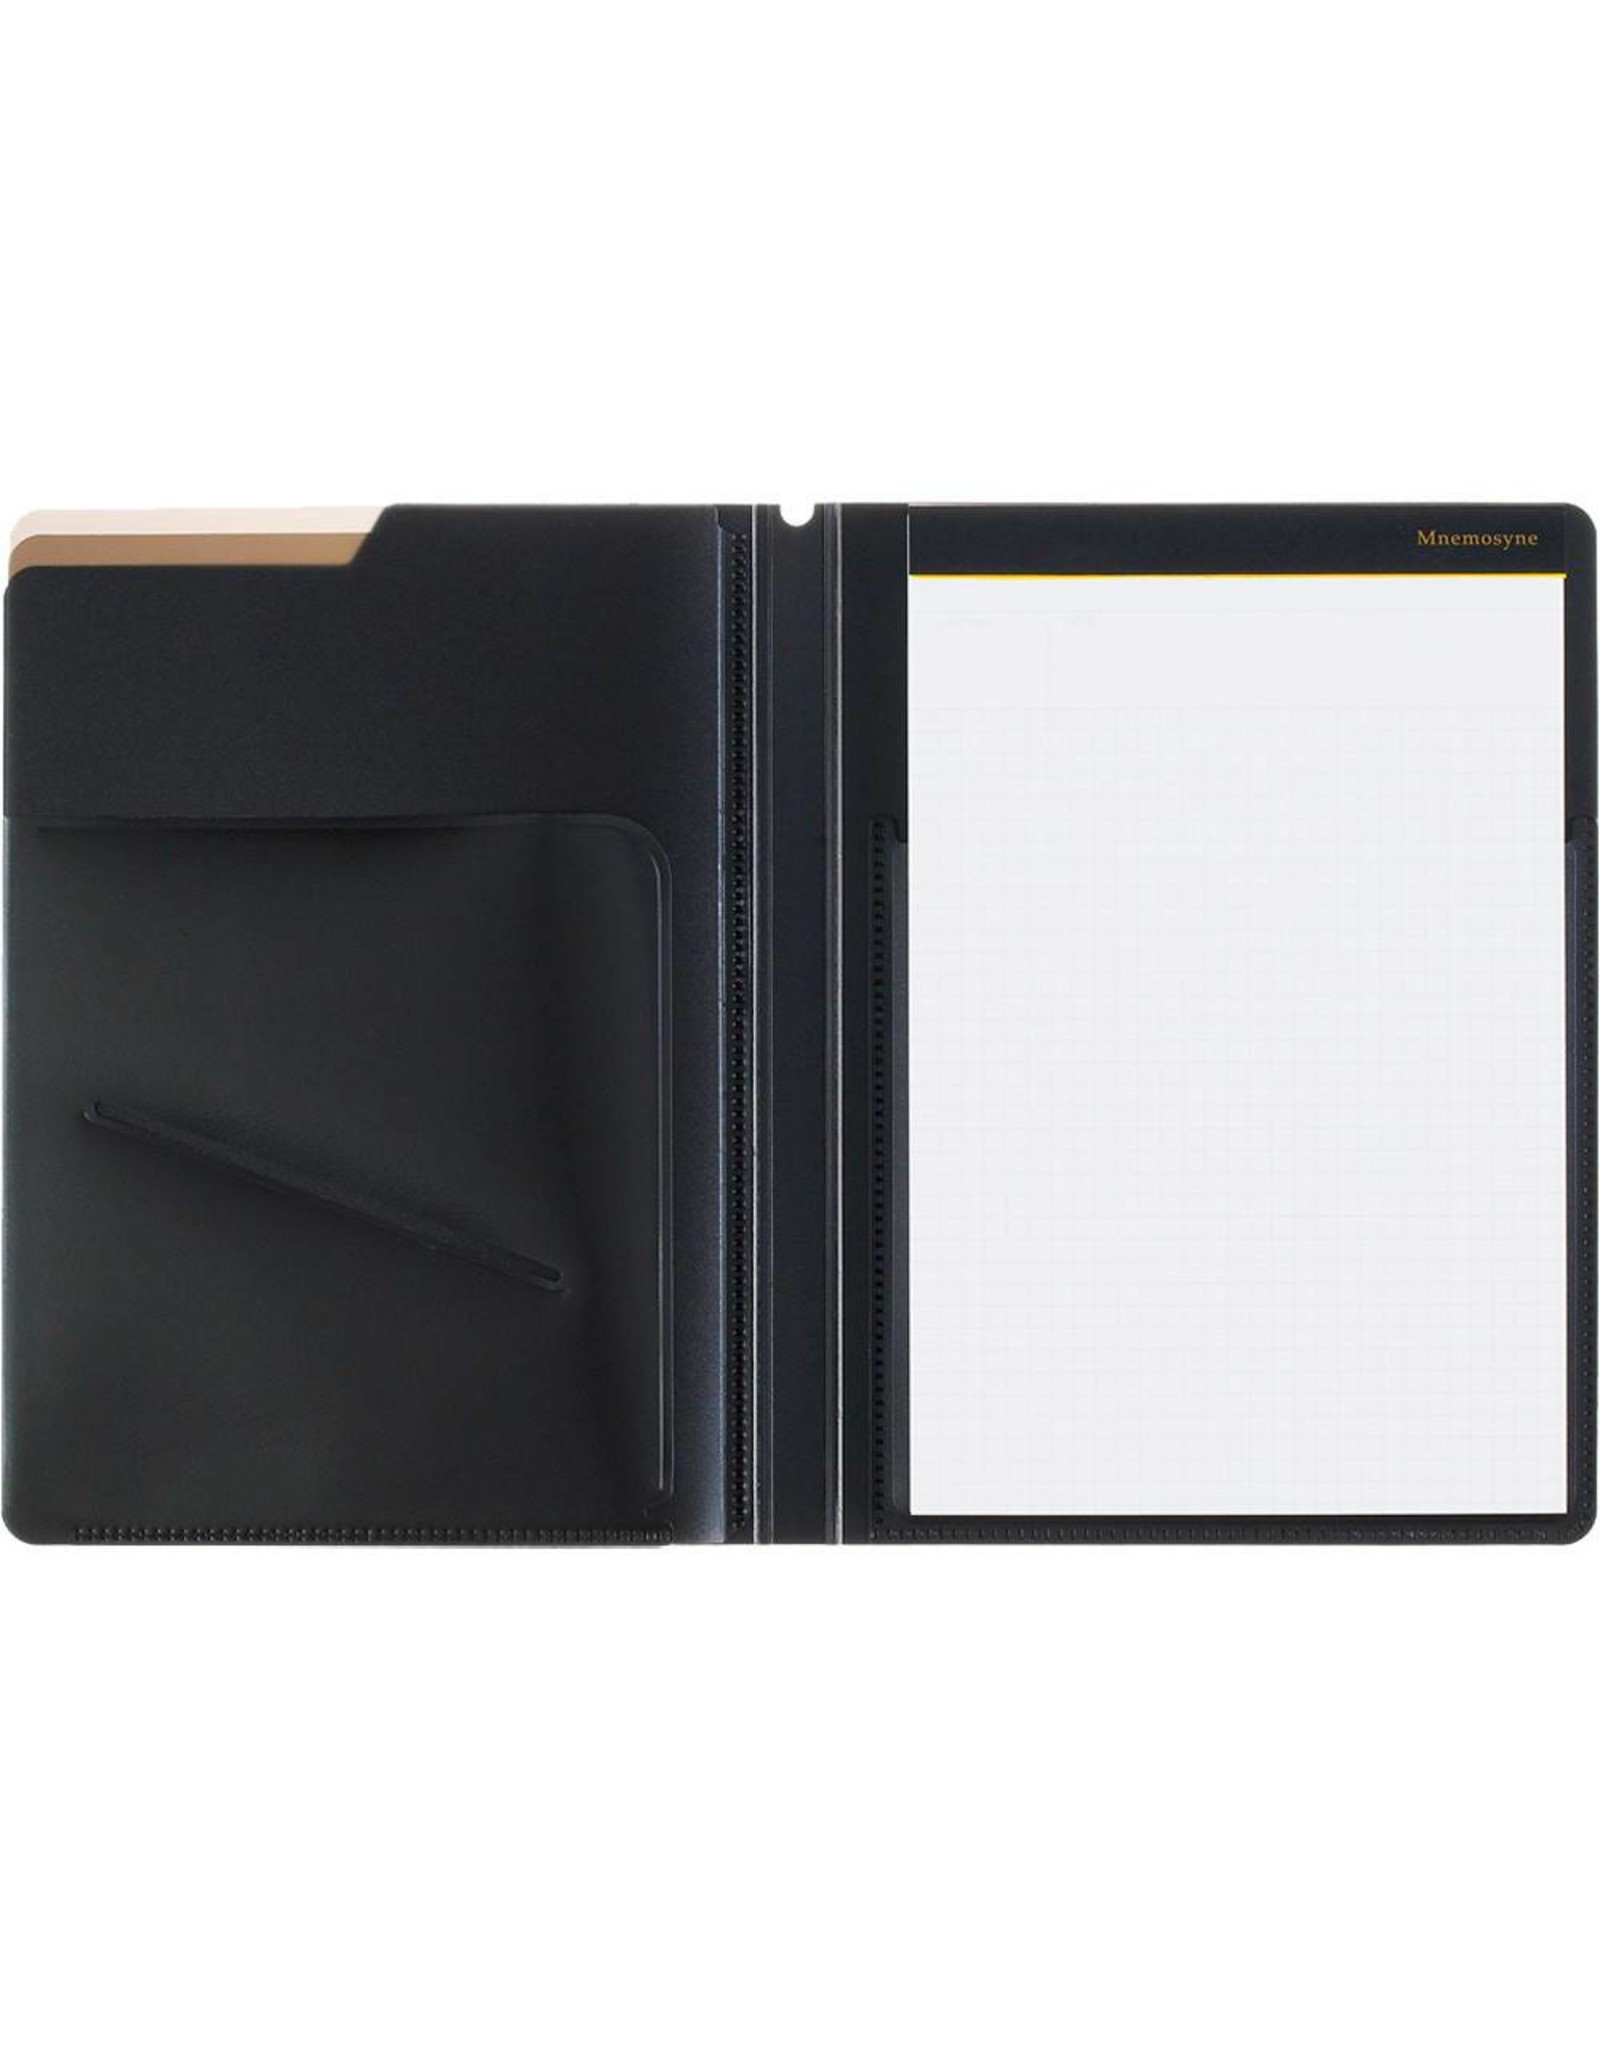 MARUMAN MNEMOSYNE NOTEPAD AND HOLDER WITH 5 POCKETS A5